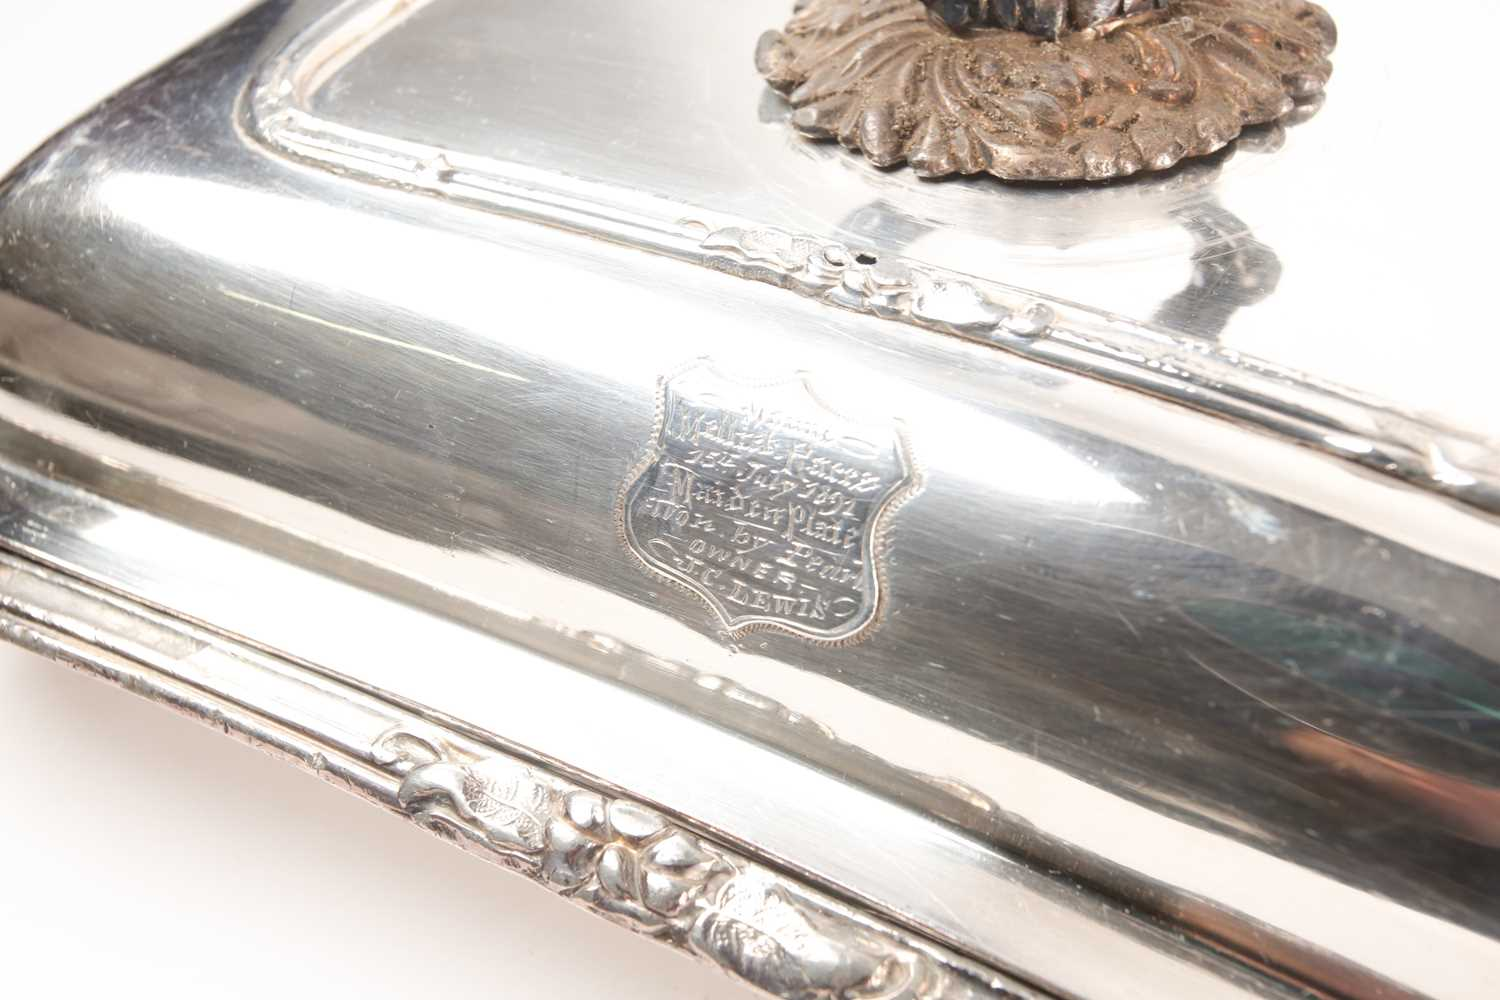 A pair of 19th century silver plated tureens and covers, the covers with shield shape cartouch - Image 2 of 5